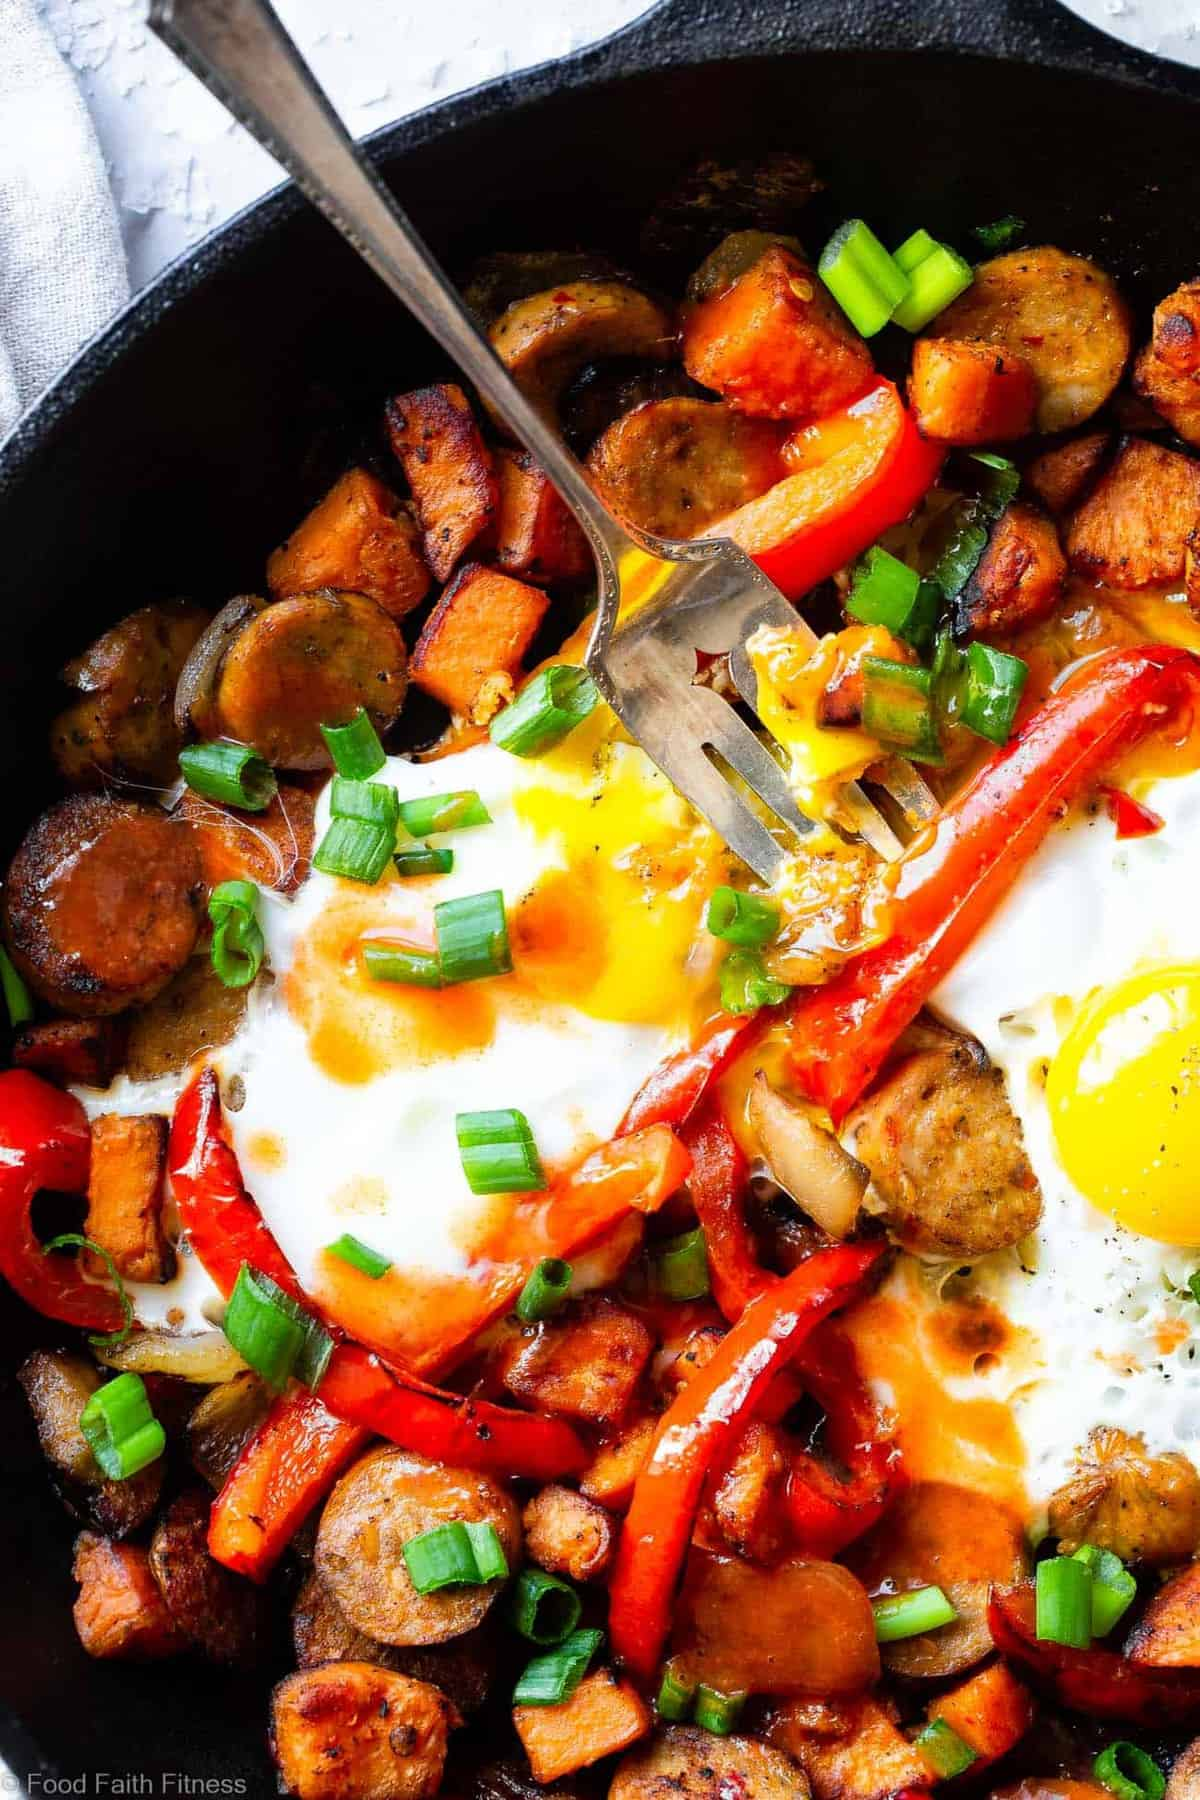 Buffalo Chicken Paleo Sweet Potato Hash - A game day spin on a classic breakfast that will be hit with even picky eaters! It's a quick and easy breakfast OR dinner that is paleo and whole30 compliant too! | #Foodfaithfitness |